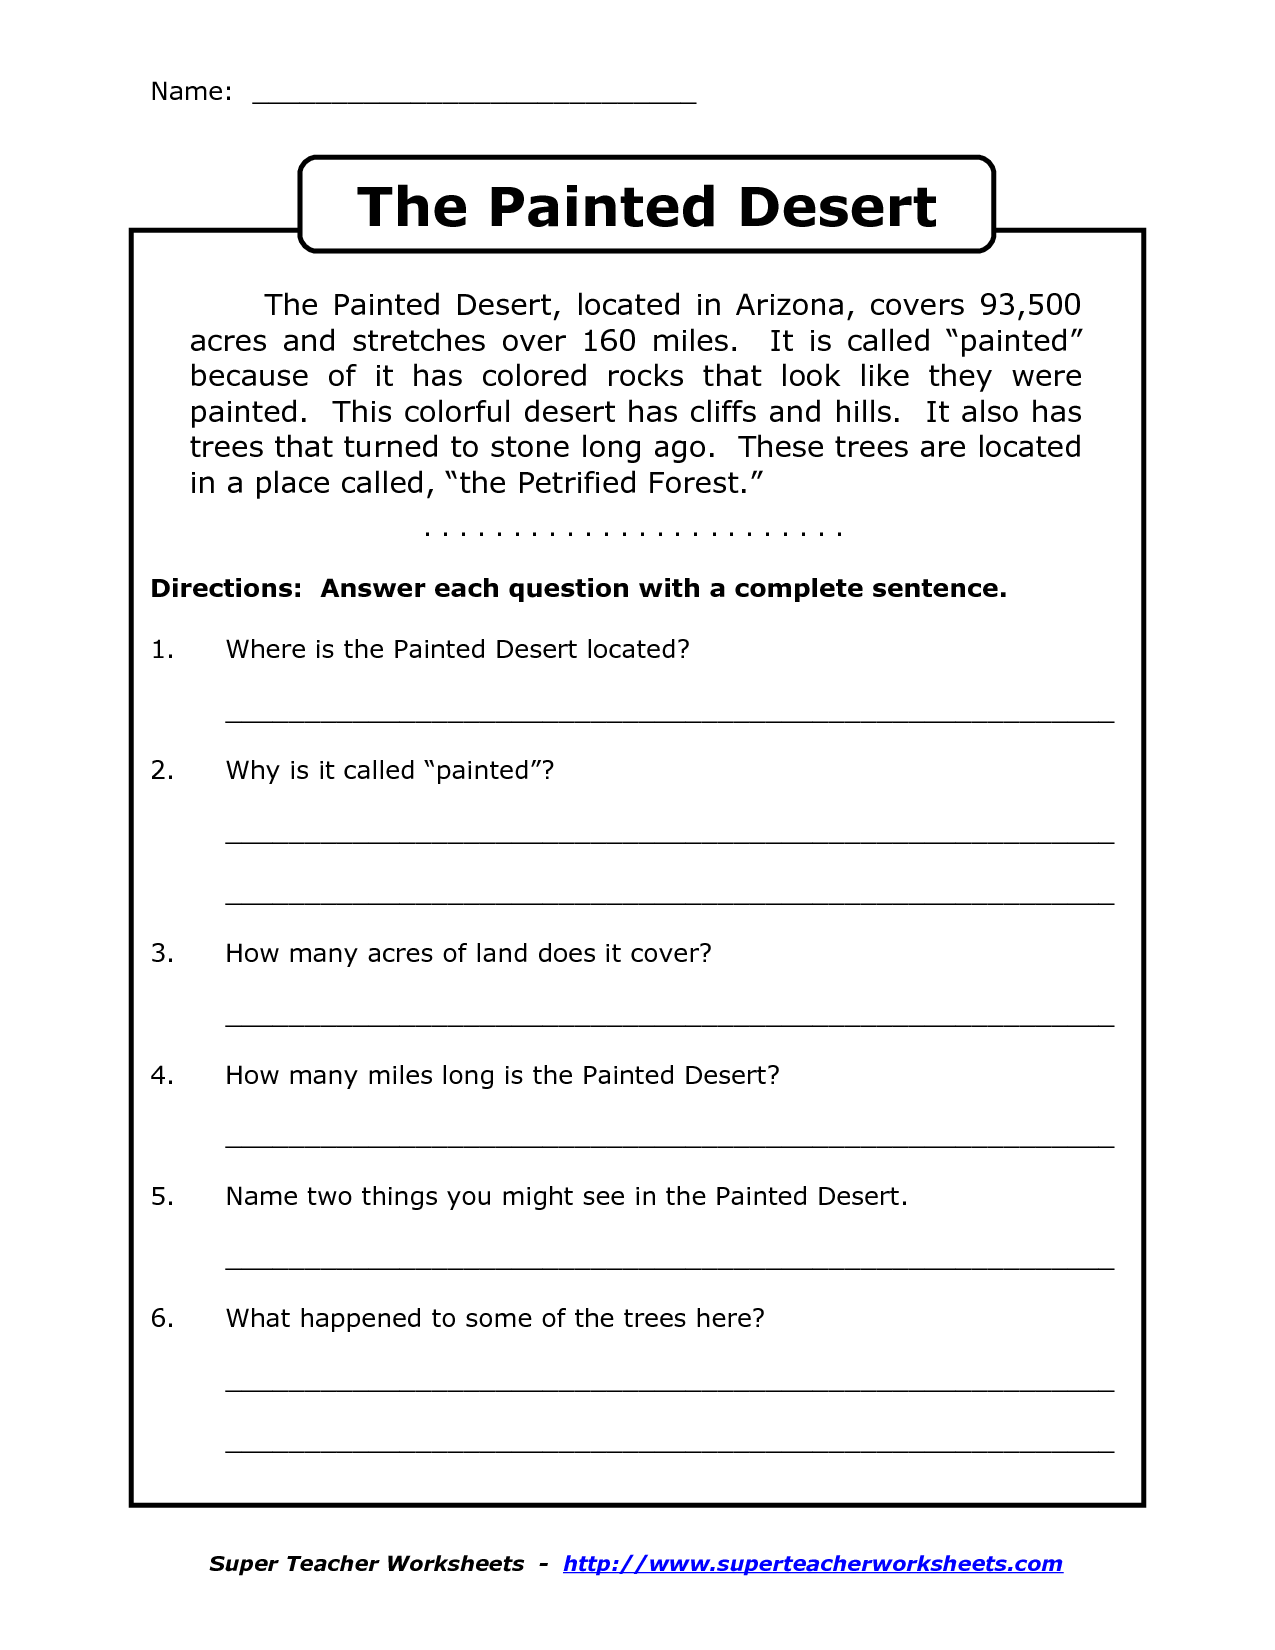 worksheet Reading Worksheets 4th Grade reading worksheets for 4th grade comprehension 3 name the painted desert projects to try pinterest compreh